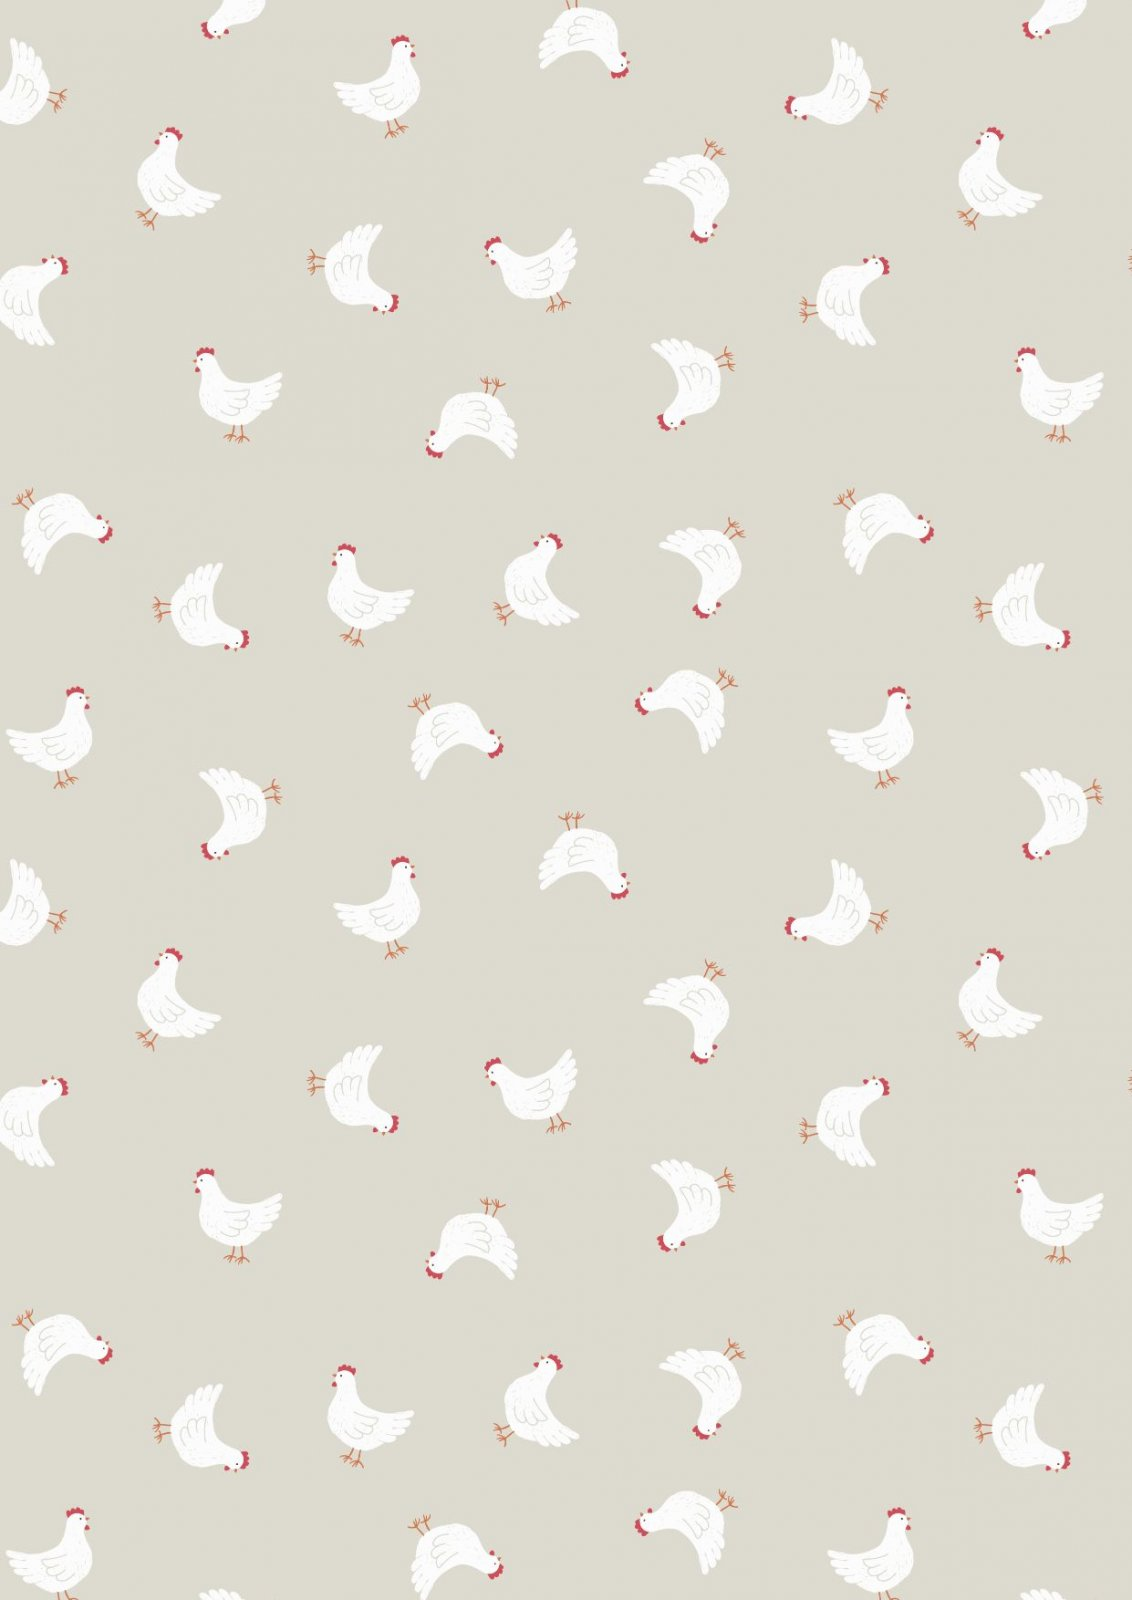 COUNTRY LIFE RELOVED LITTLE HENS ON DK CRM